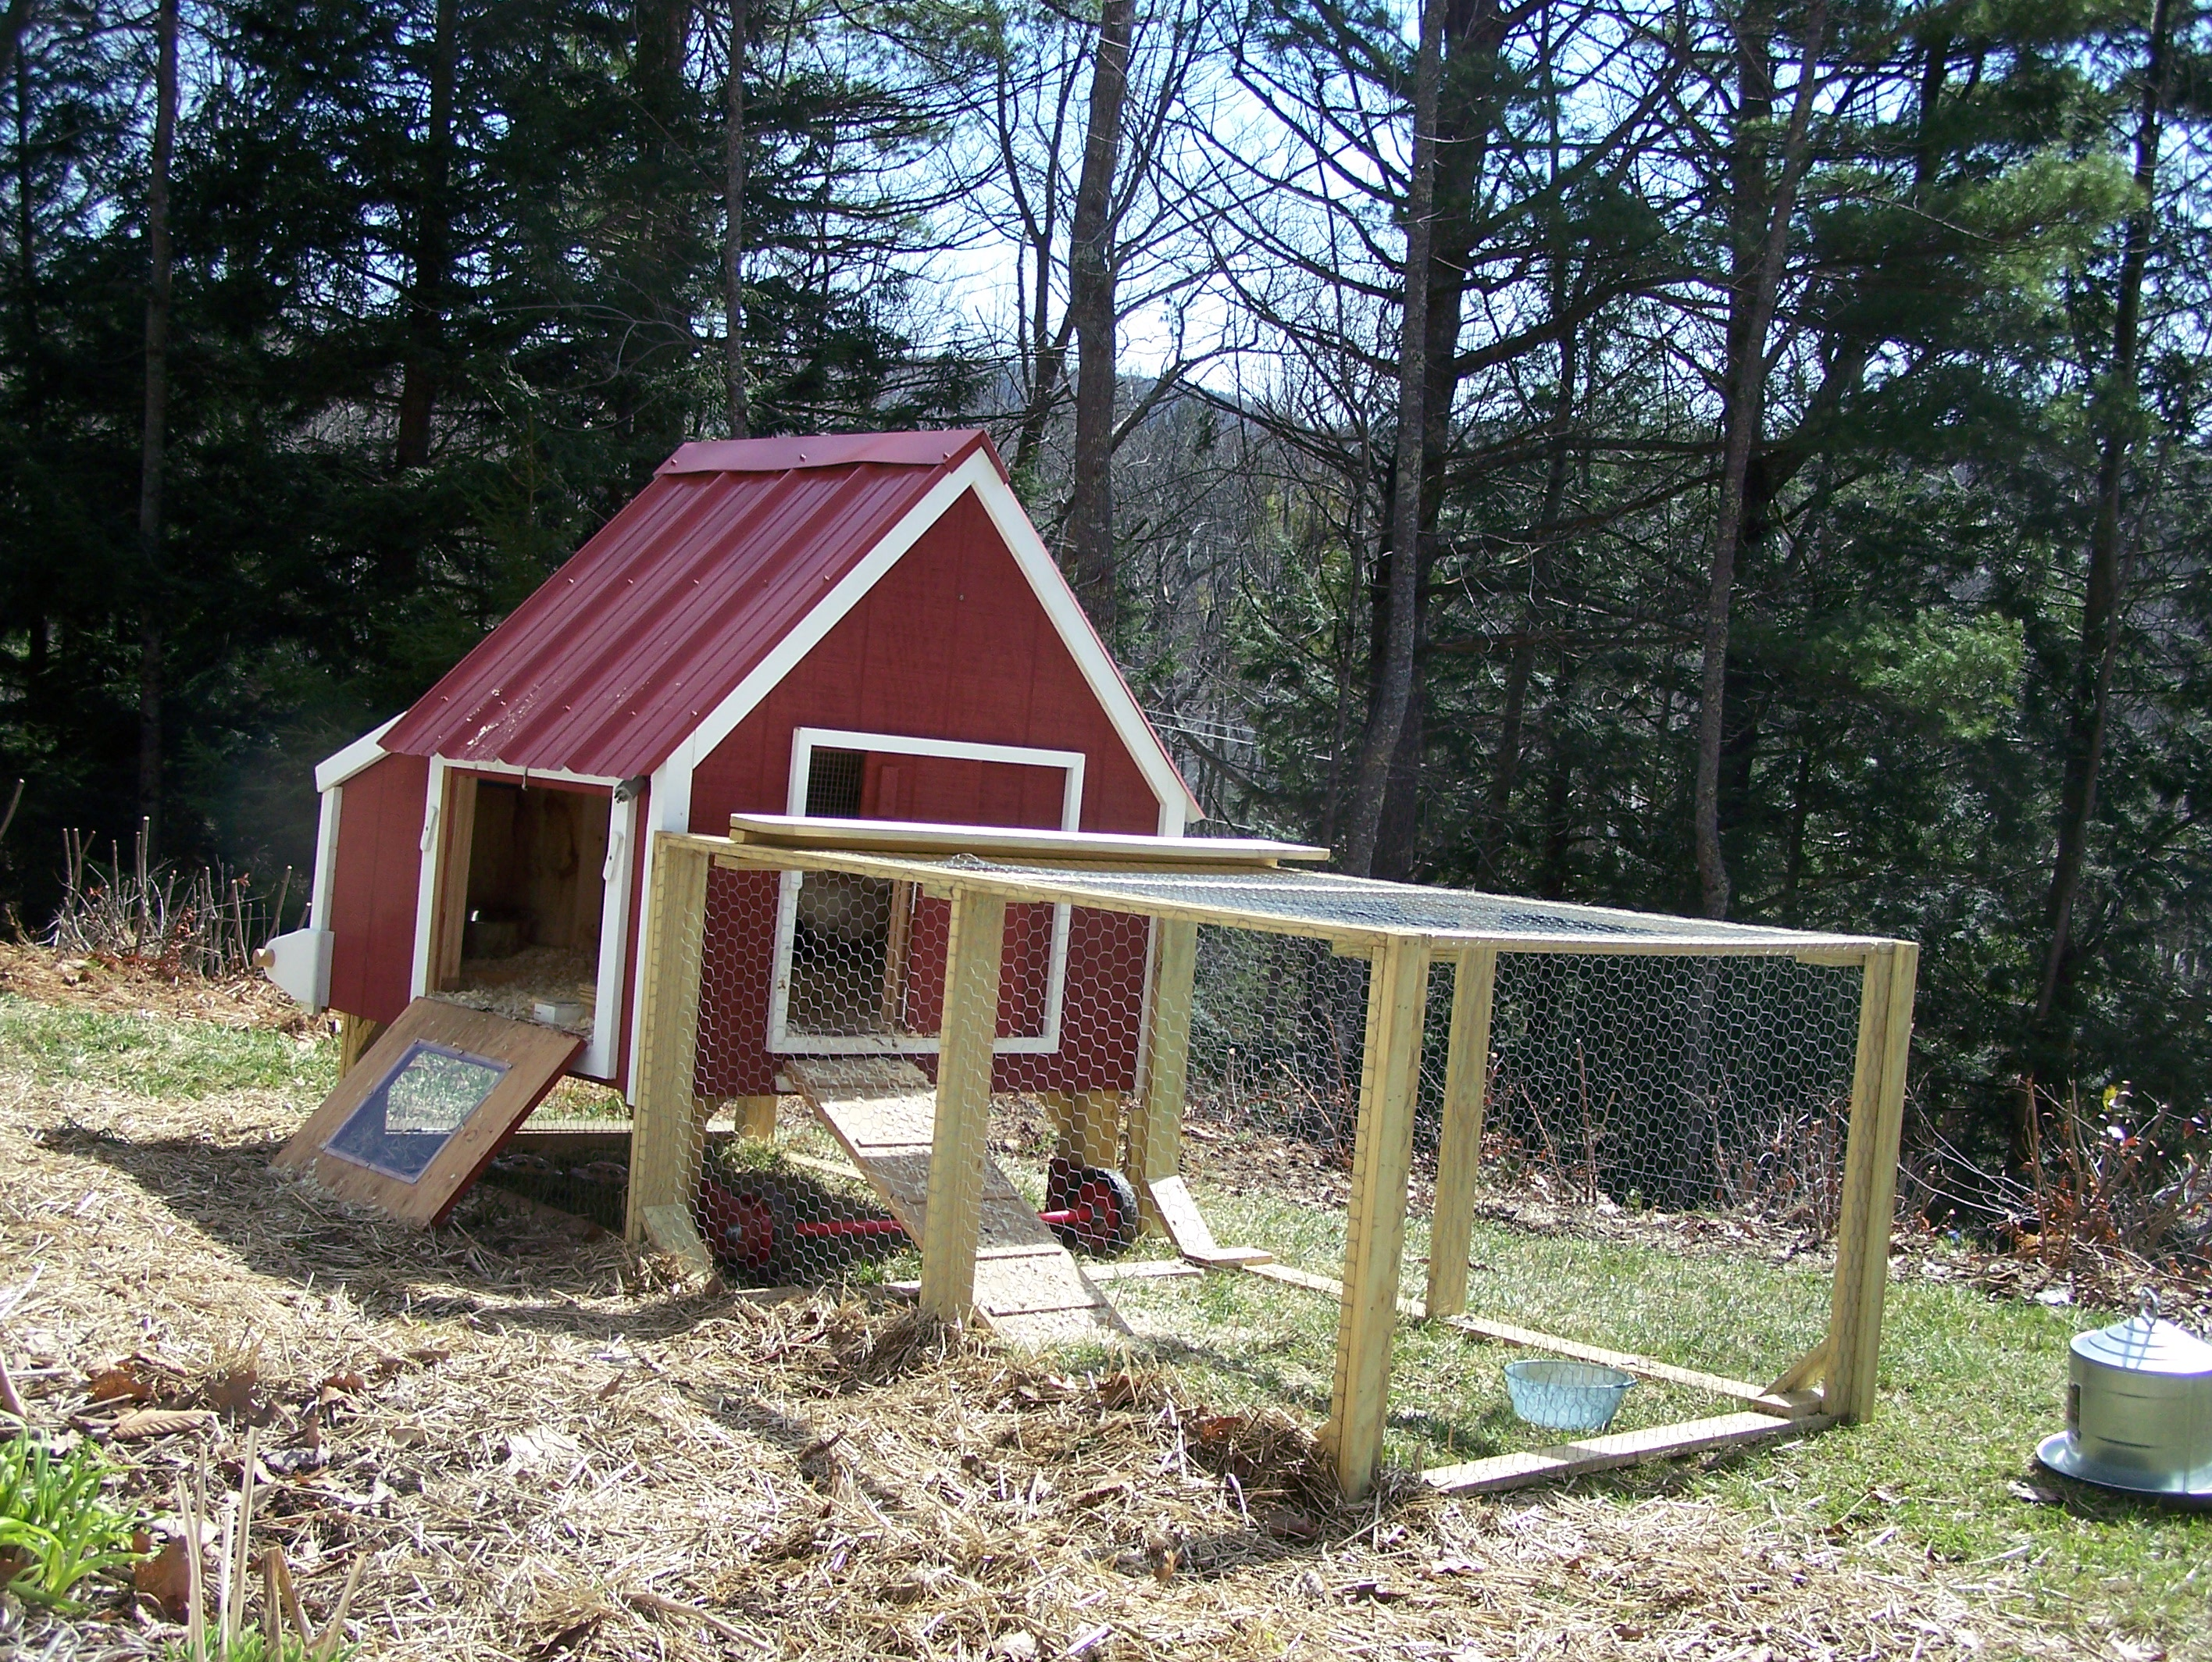 Chicken coop louisa enright 39 s blog for Making a chicken coop